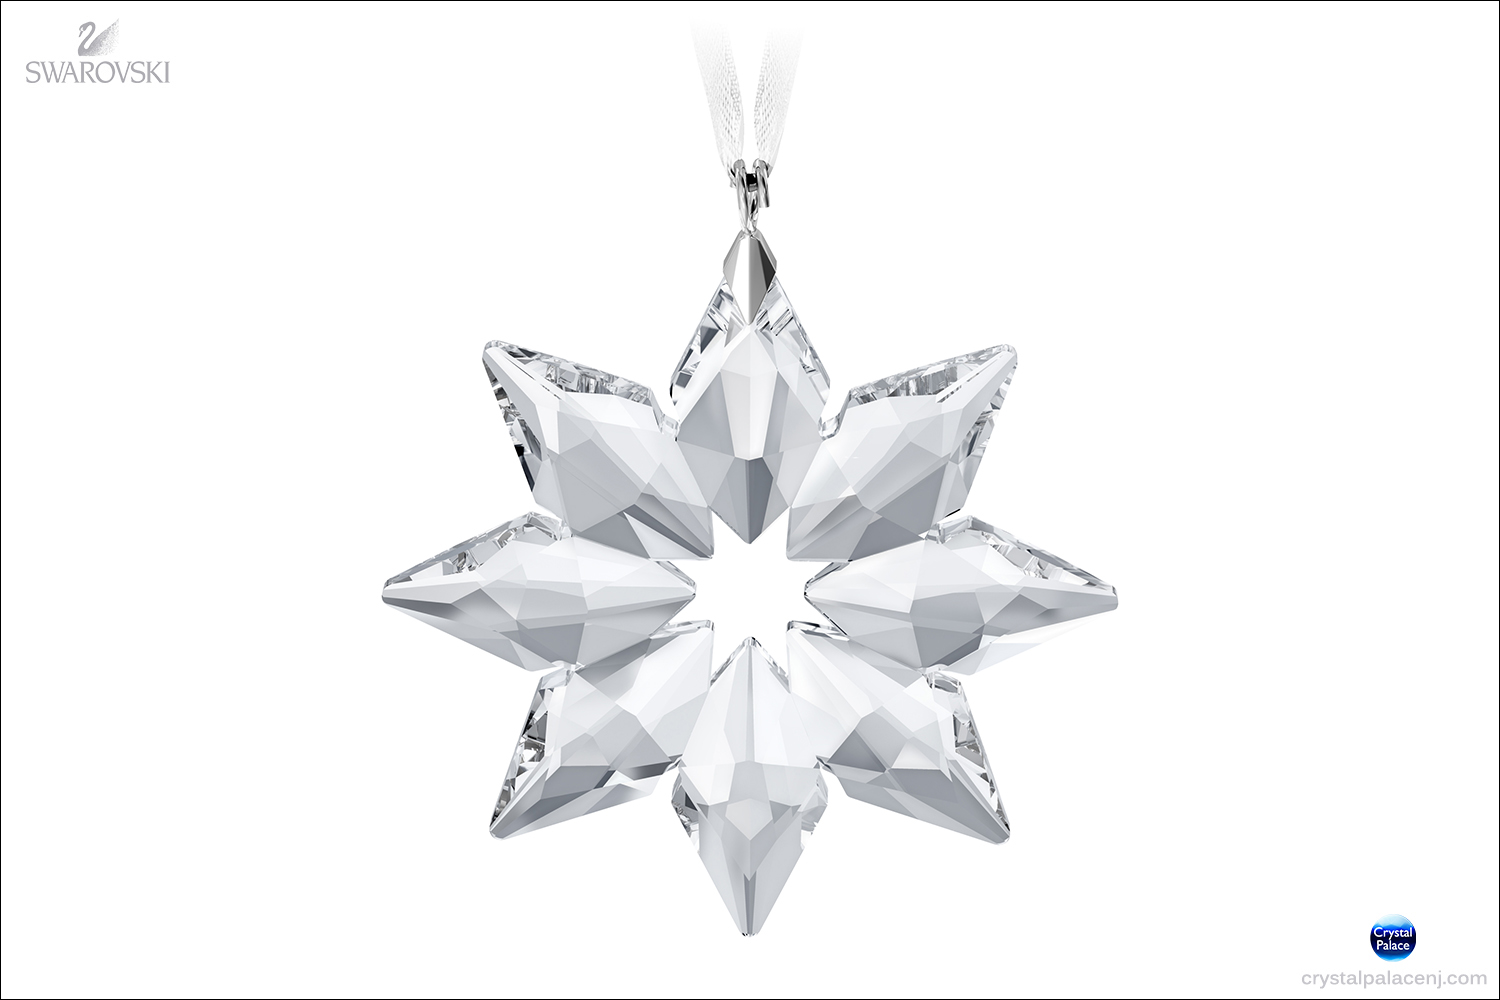 Sold Out Swarovski Christmas Ornament Little Star